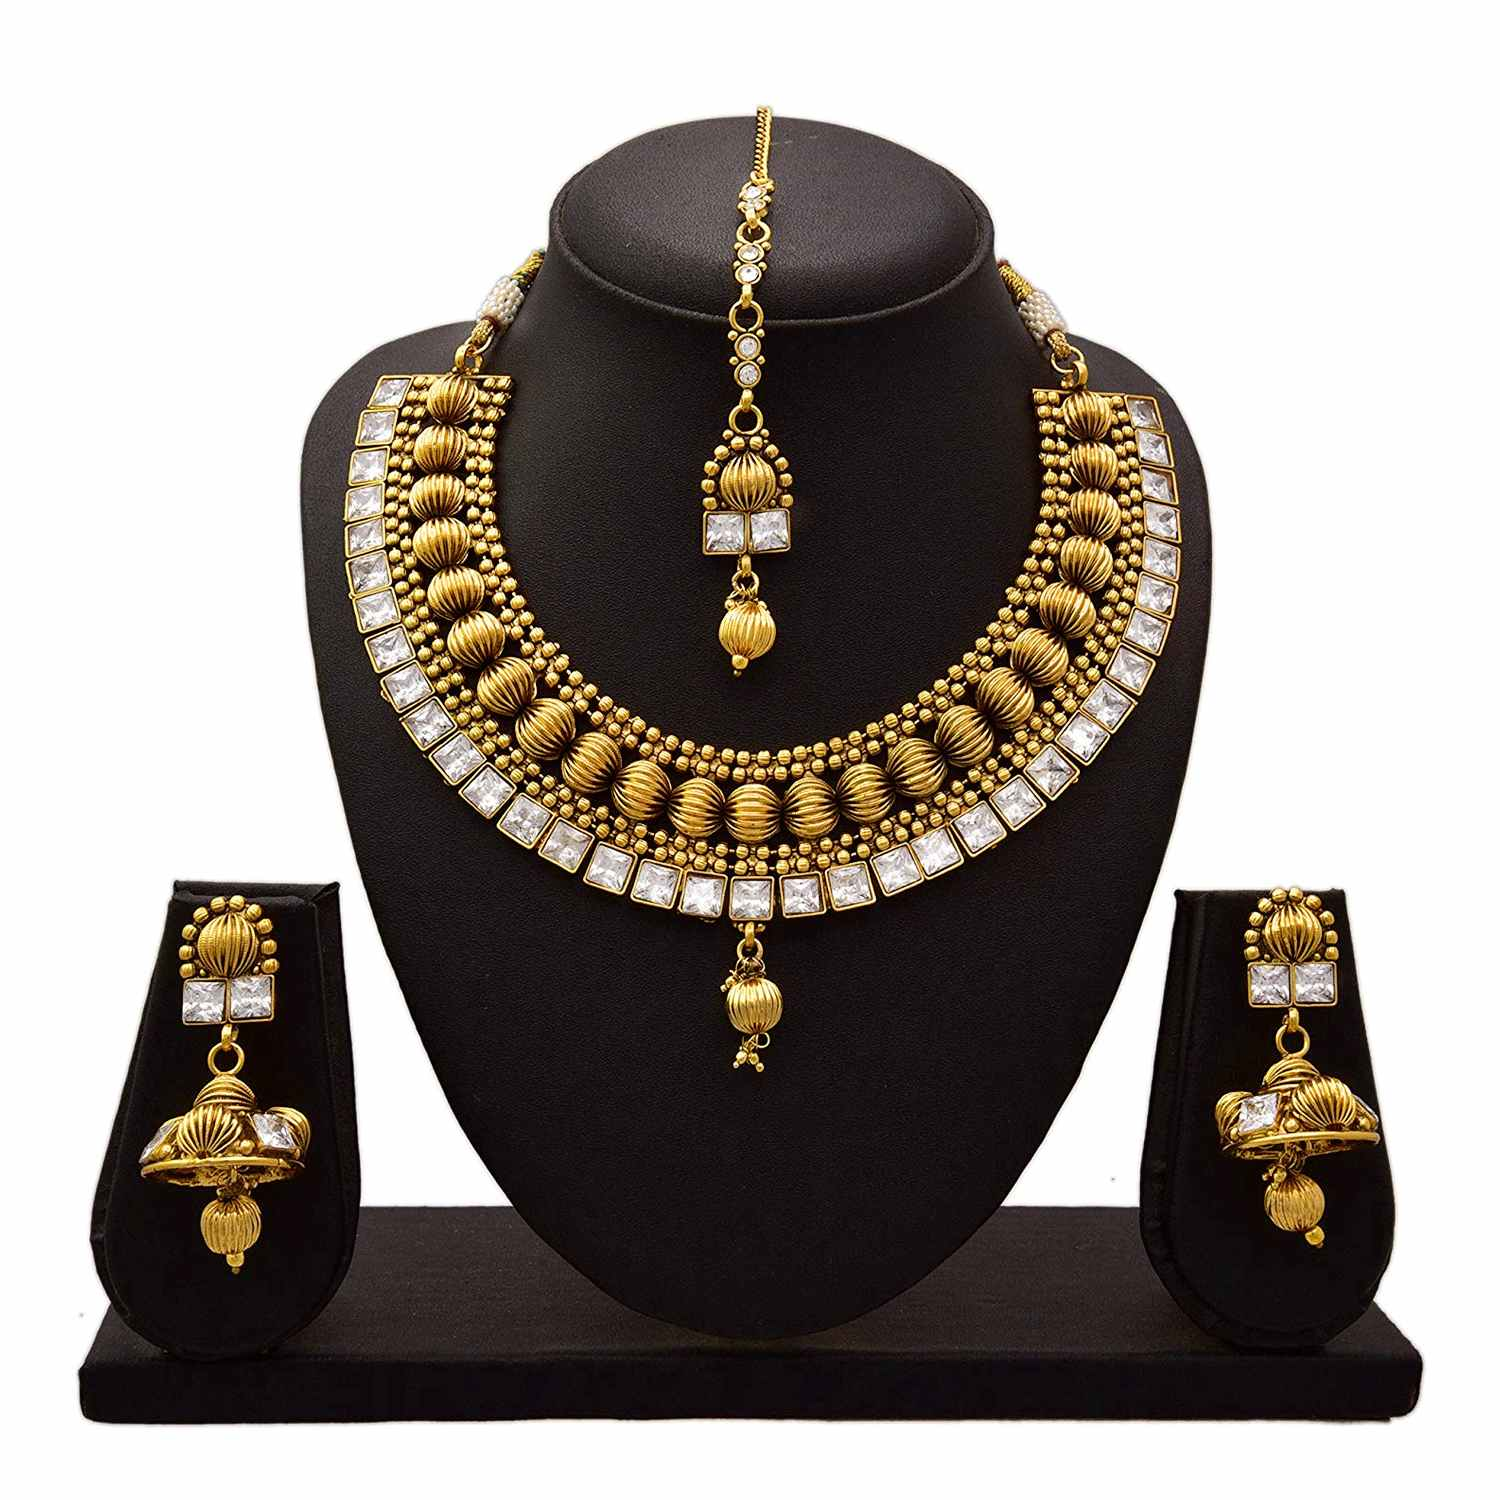 JFL - Traditional Ethnic One Gram Gold Plated Diamond Designer Necklace Set with Earring for Women and Girls.